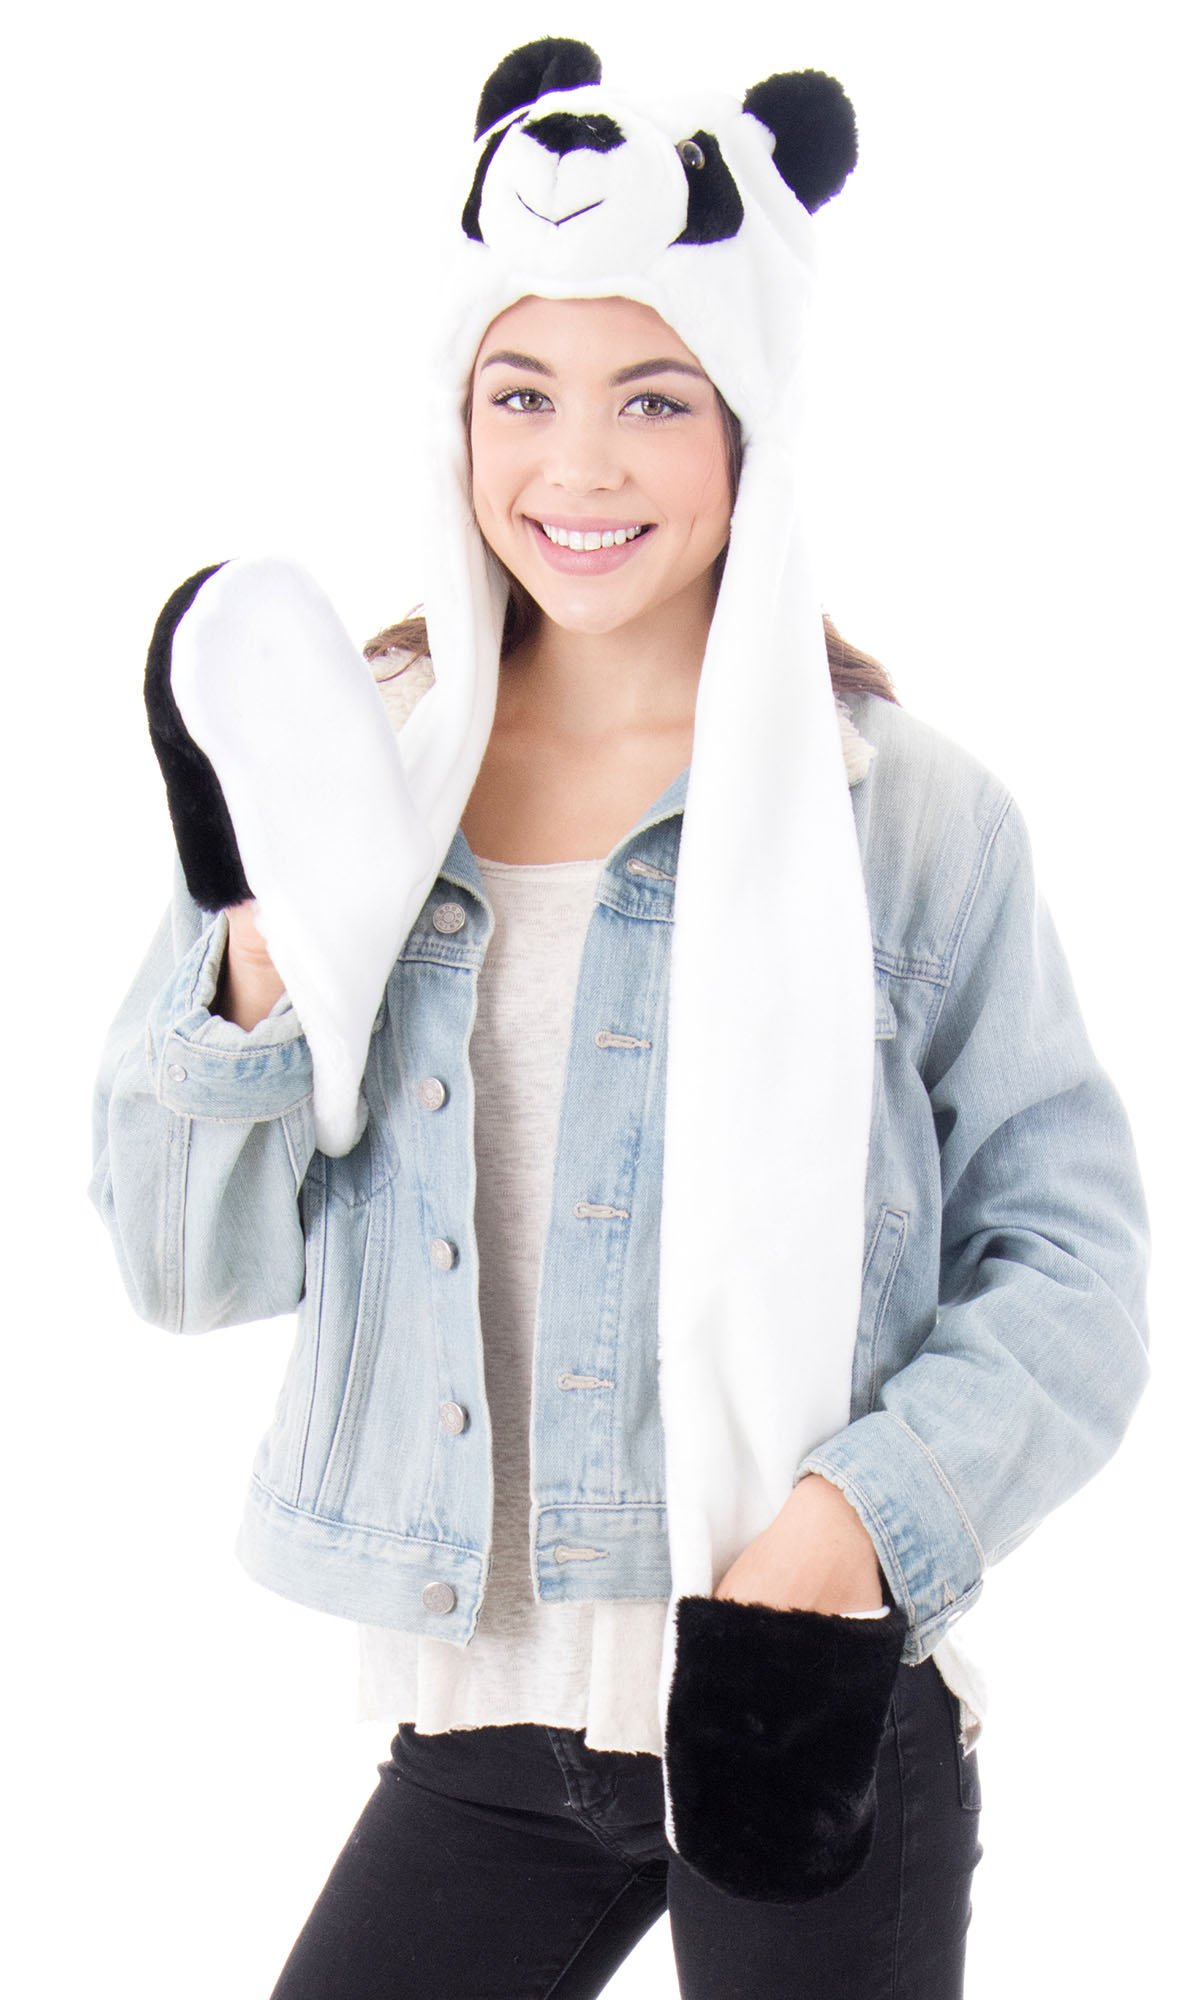 394066f7177 Simplicity Panda Animal Hats with Long Scarf 3 in 1 Multifunction Warm Hats